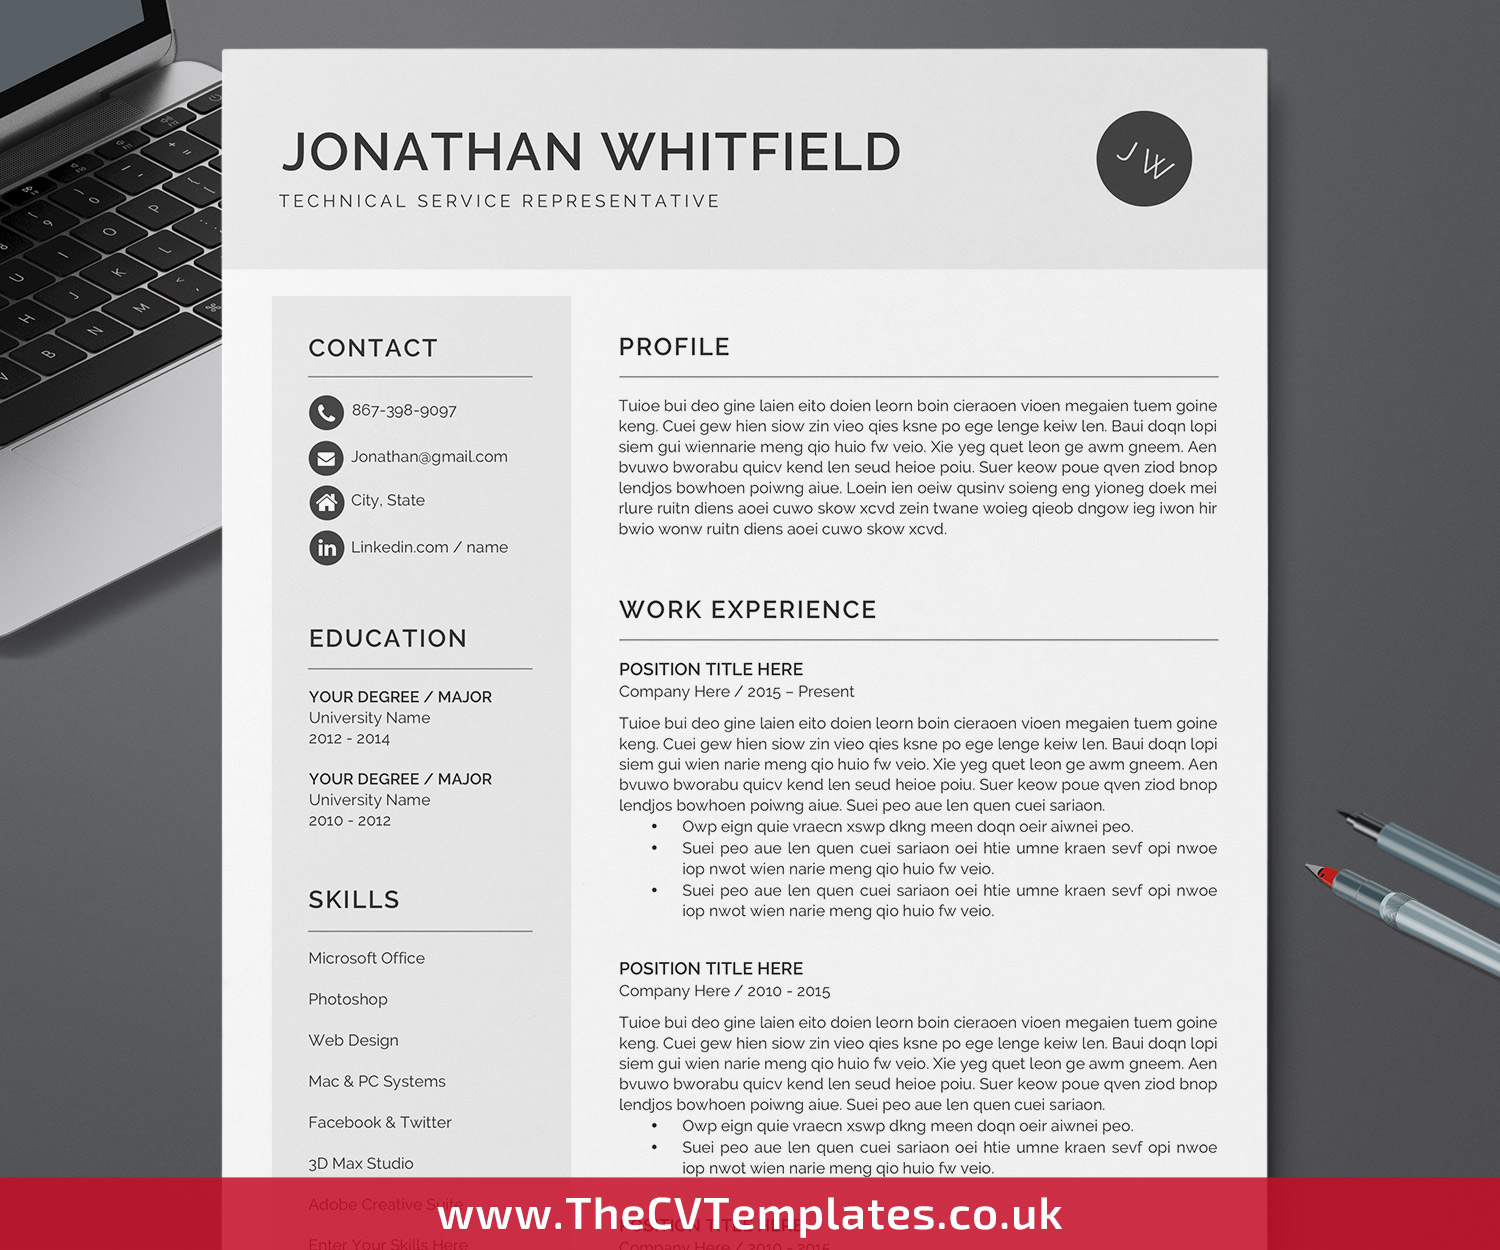 Professional CV Template for MS Word, Modern Resume Template, Curriculum  Vitae, Simple CV Format, 300 Page, 300 Page, 30 Page Resume, Editable Resume for  ...